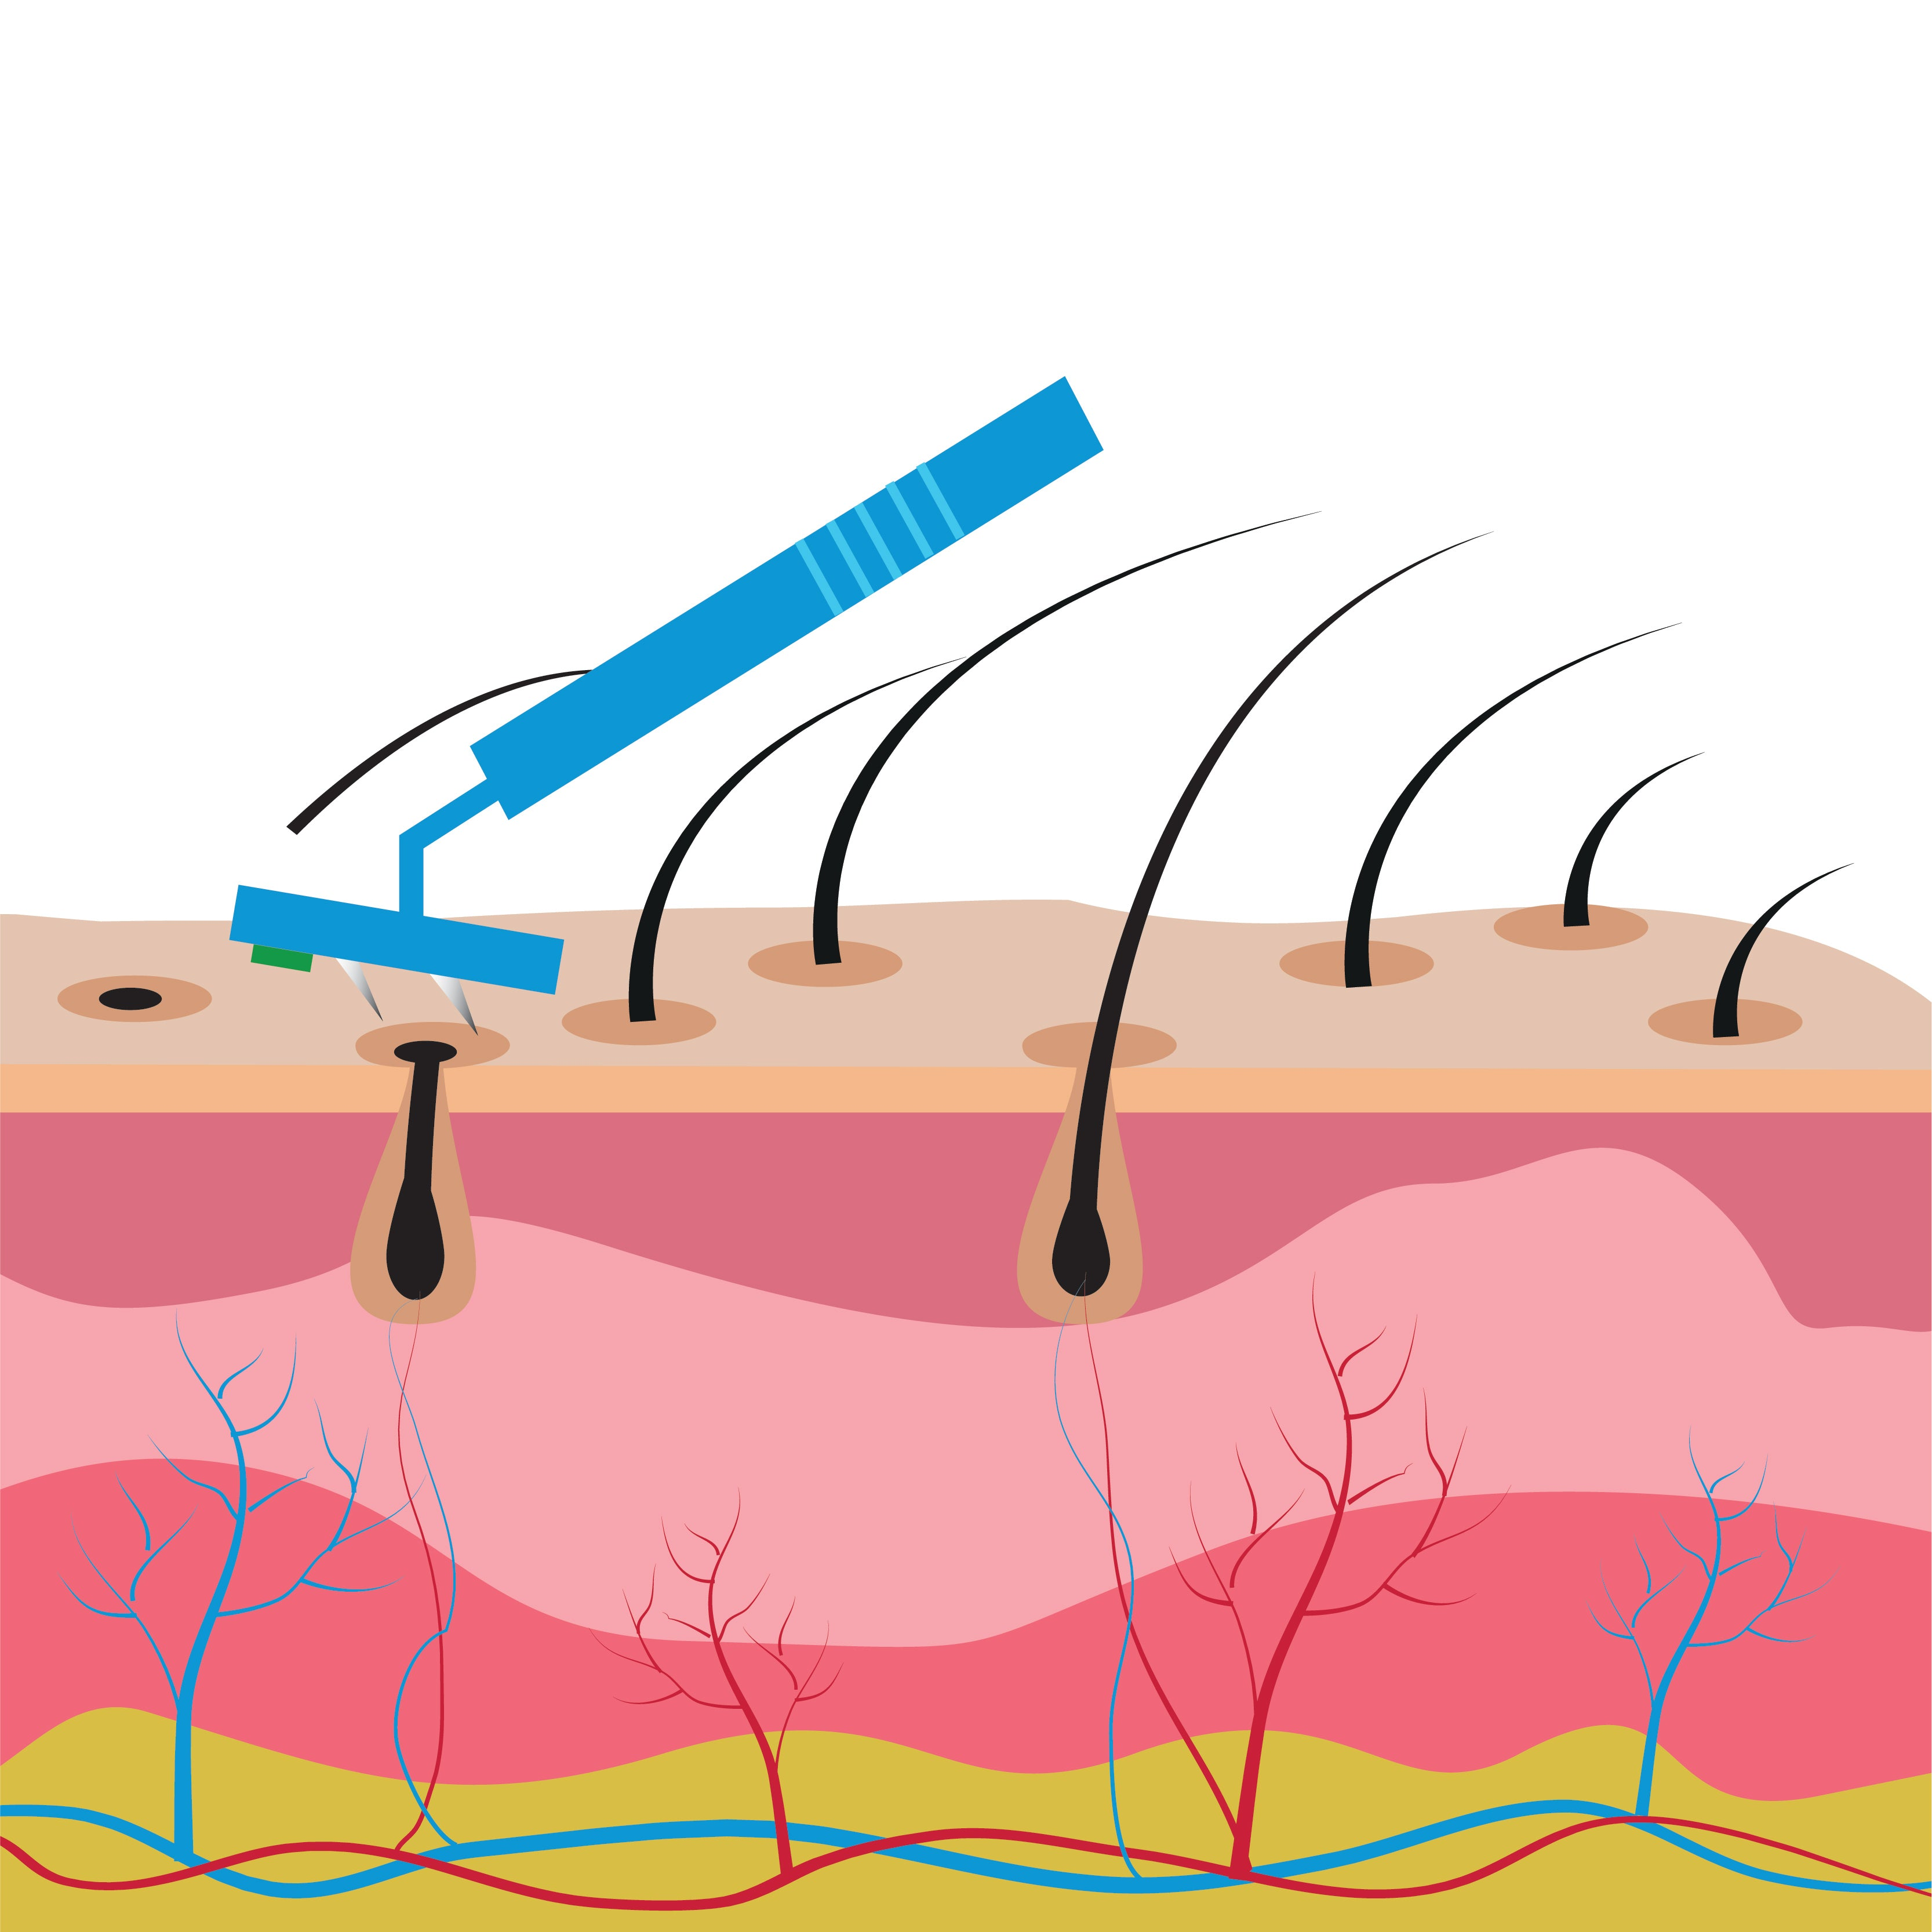 structure of the skin and hair removal by shaving